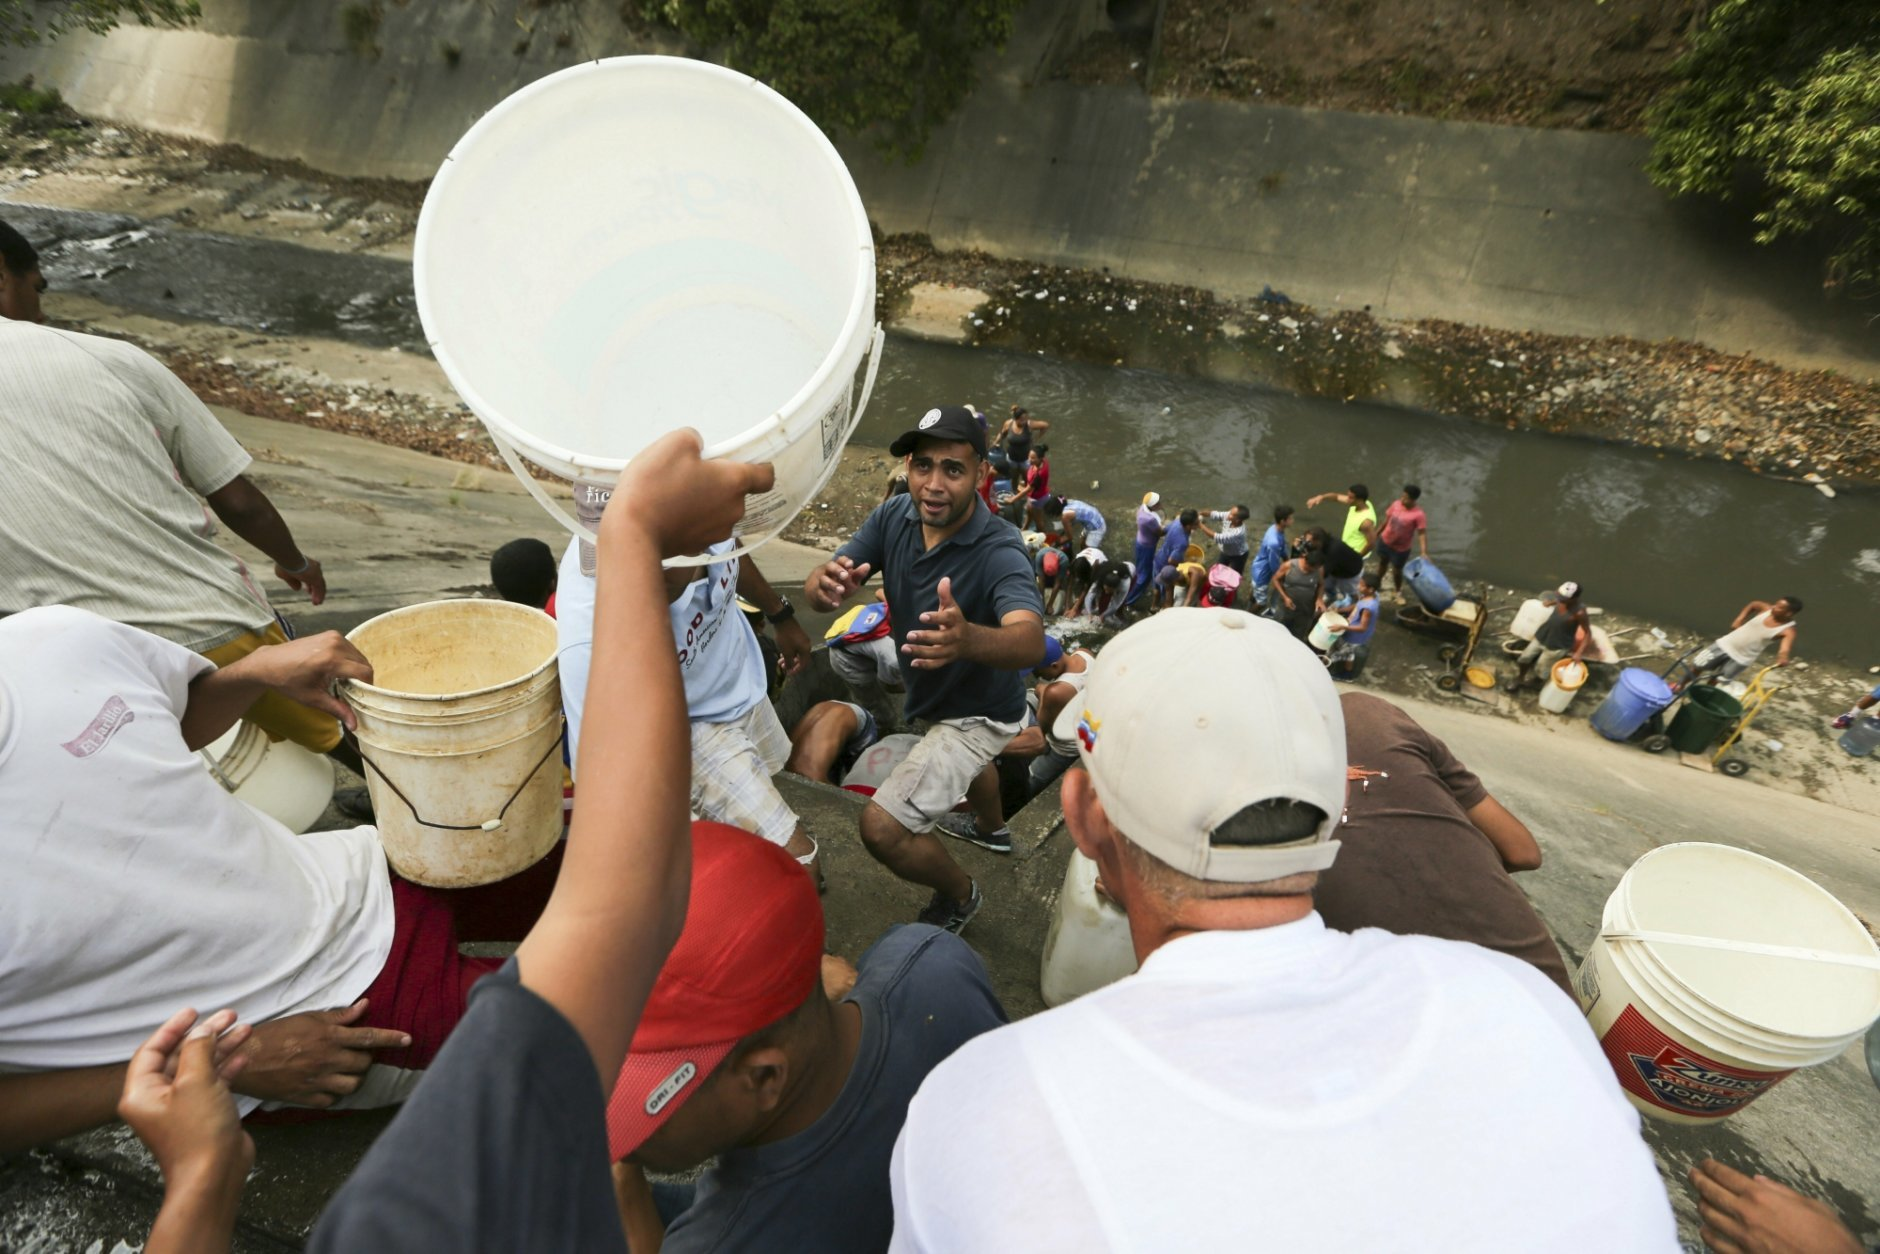 People collect water from a leaking pipeline above the Guaire River during rolling blackouts, which affects the water pumps in people's homes, offices and stores, in Caracas, Venezuela, Monday, March 11, 2019. The blackout has intensified the toxic political climate, with opposition leader Juan Guaido blaming alleged government corruption and mismanagement and President Nicolas Maduro accusing his U.S.-backed adversary of sabotaging the national grid. (AP Photo/Fernando Llano)